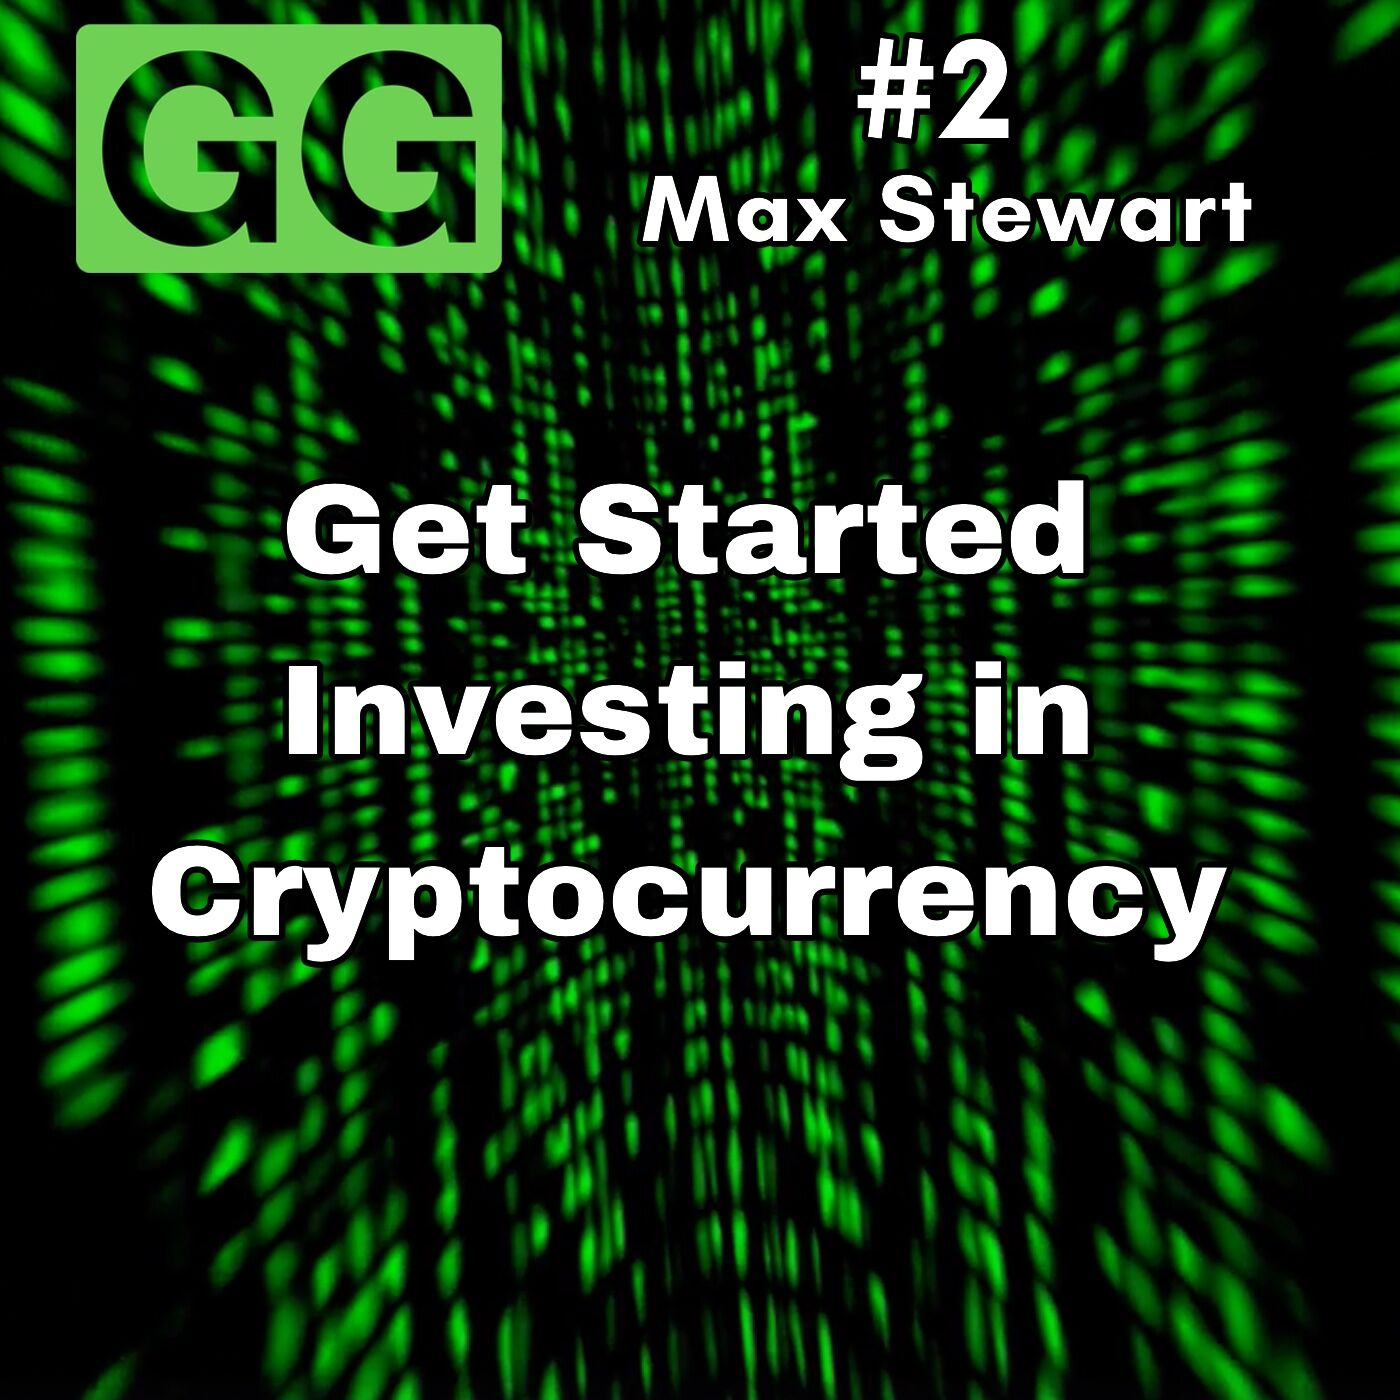 #2 - Max Stewart: Get Started Investing in Cryptocurrency